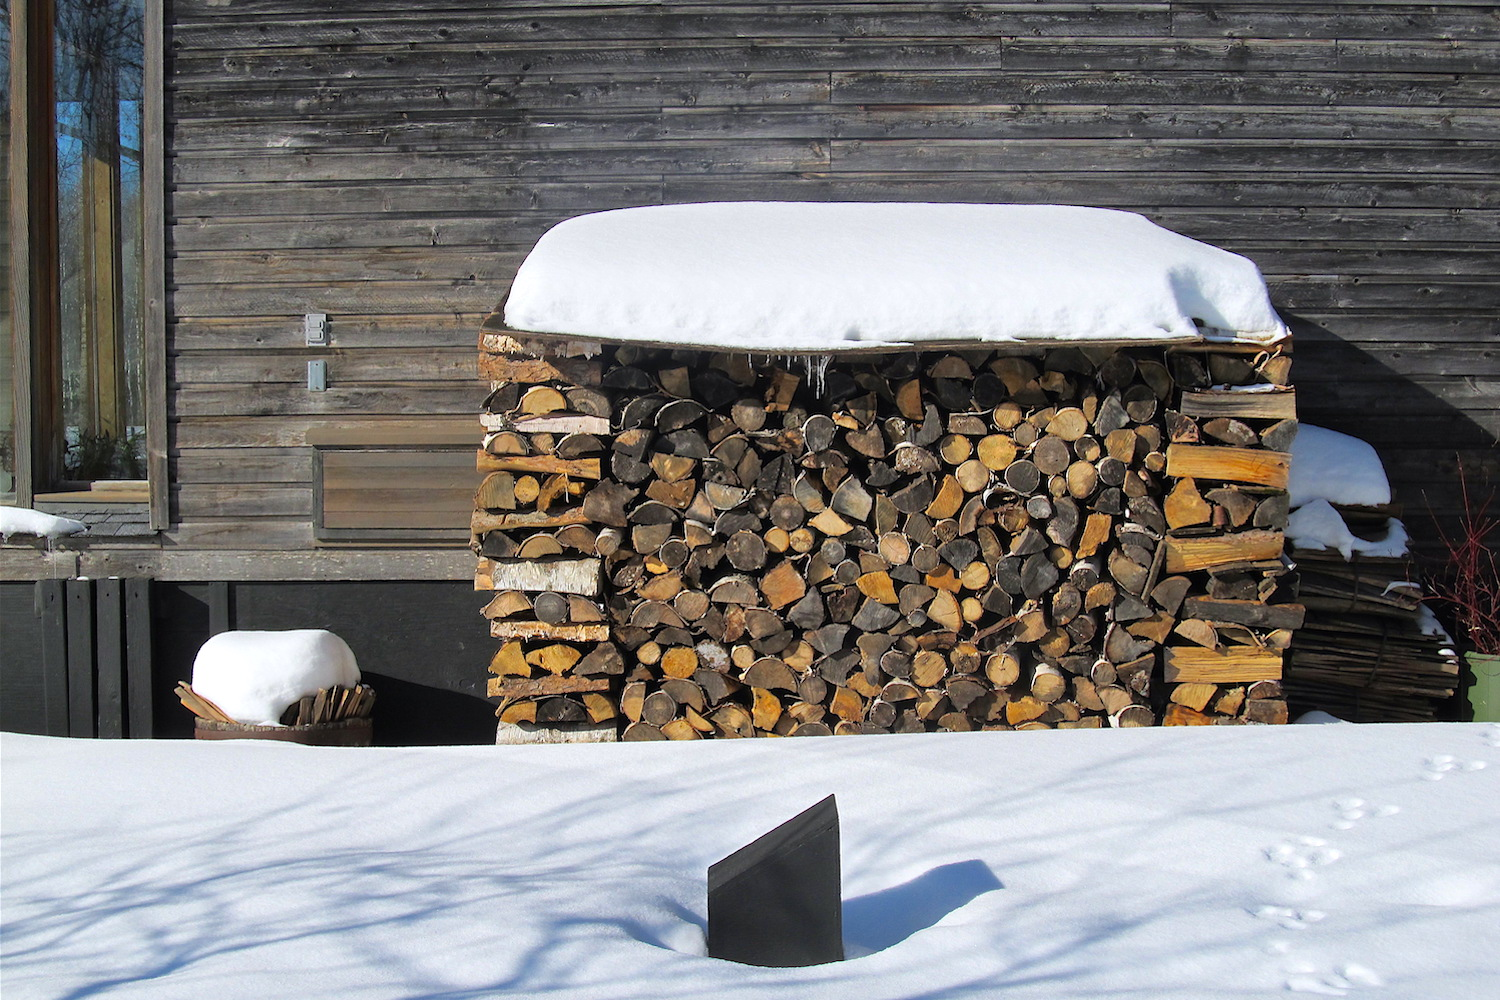 Firewood is used to augment passive solar heat gain during cloudy periods in the wintertime. Depending on the desired indoor temperature, Solace House typically uses +/- two  cords  of wood per year.